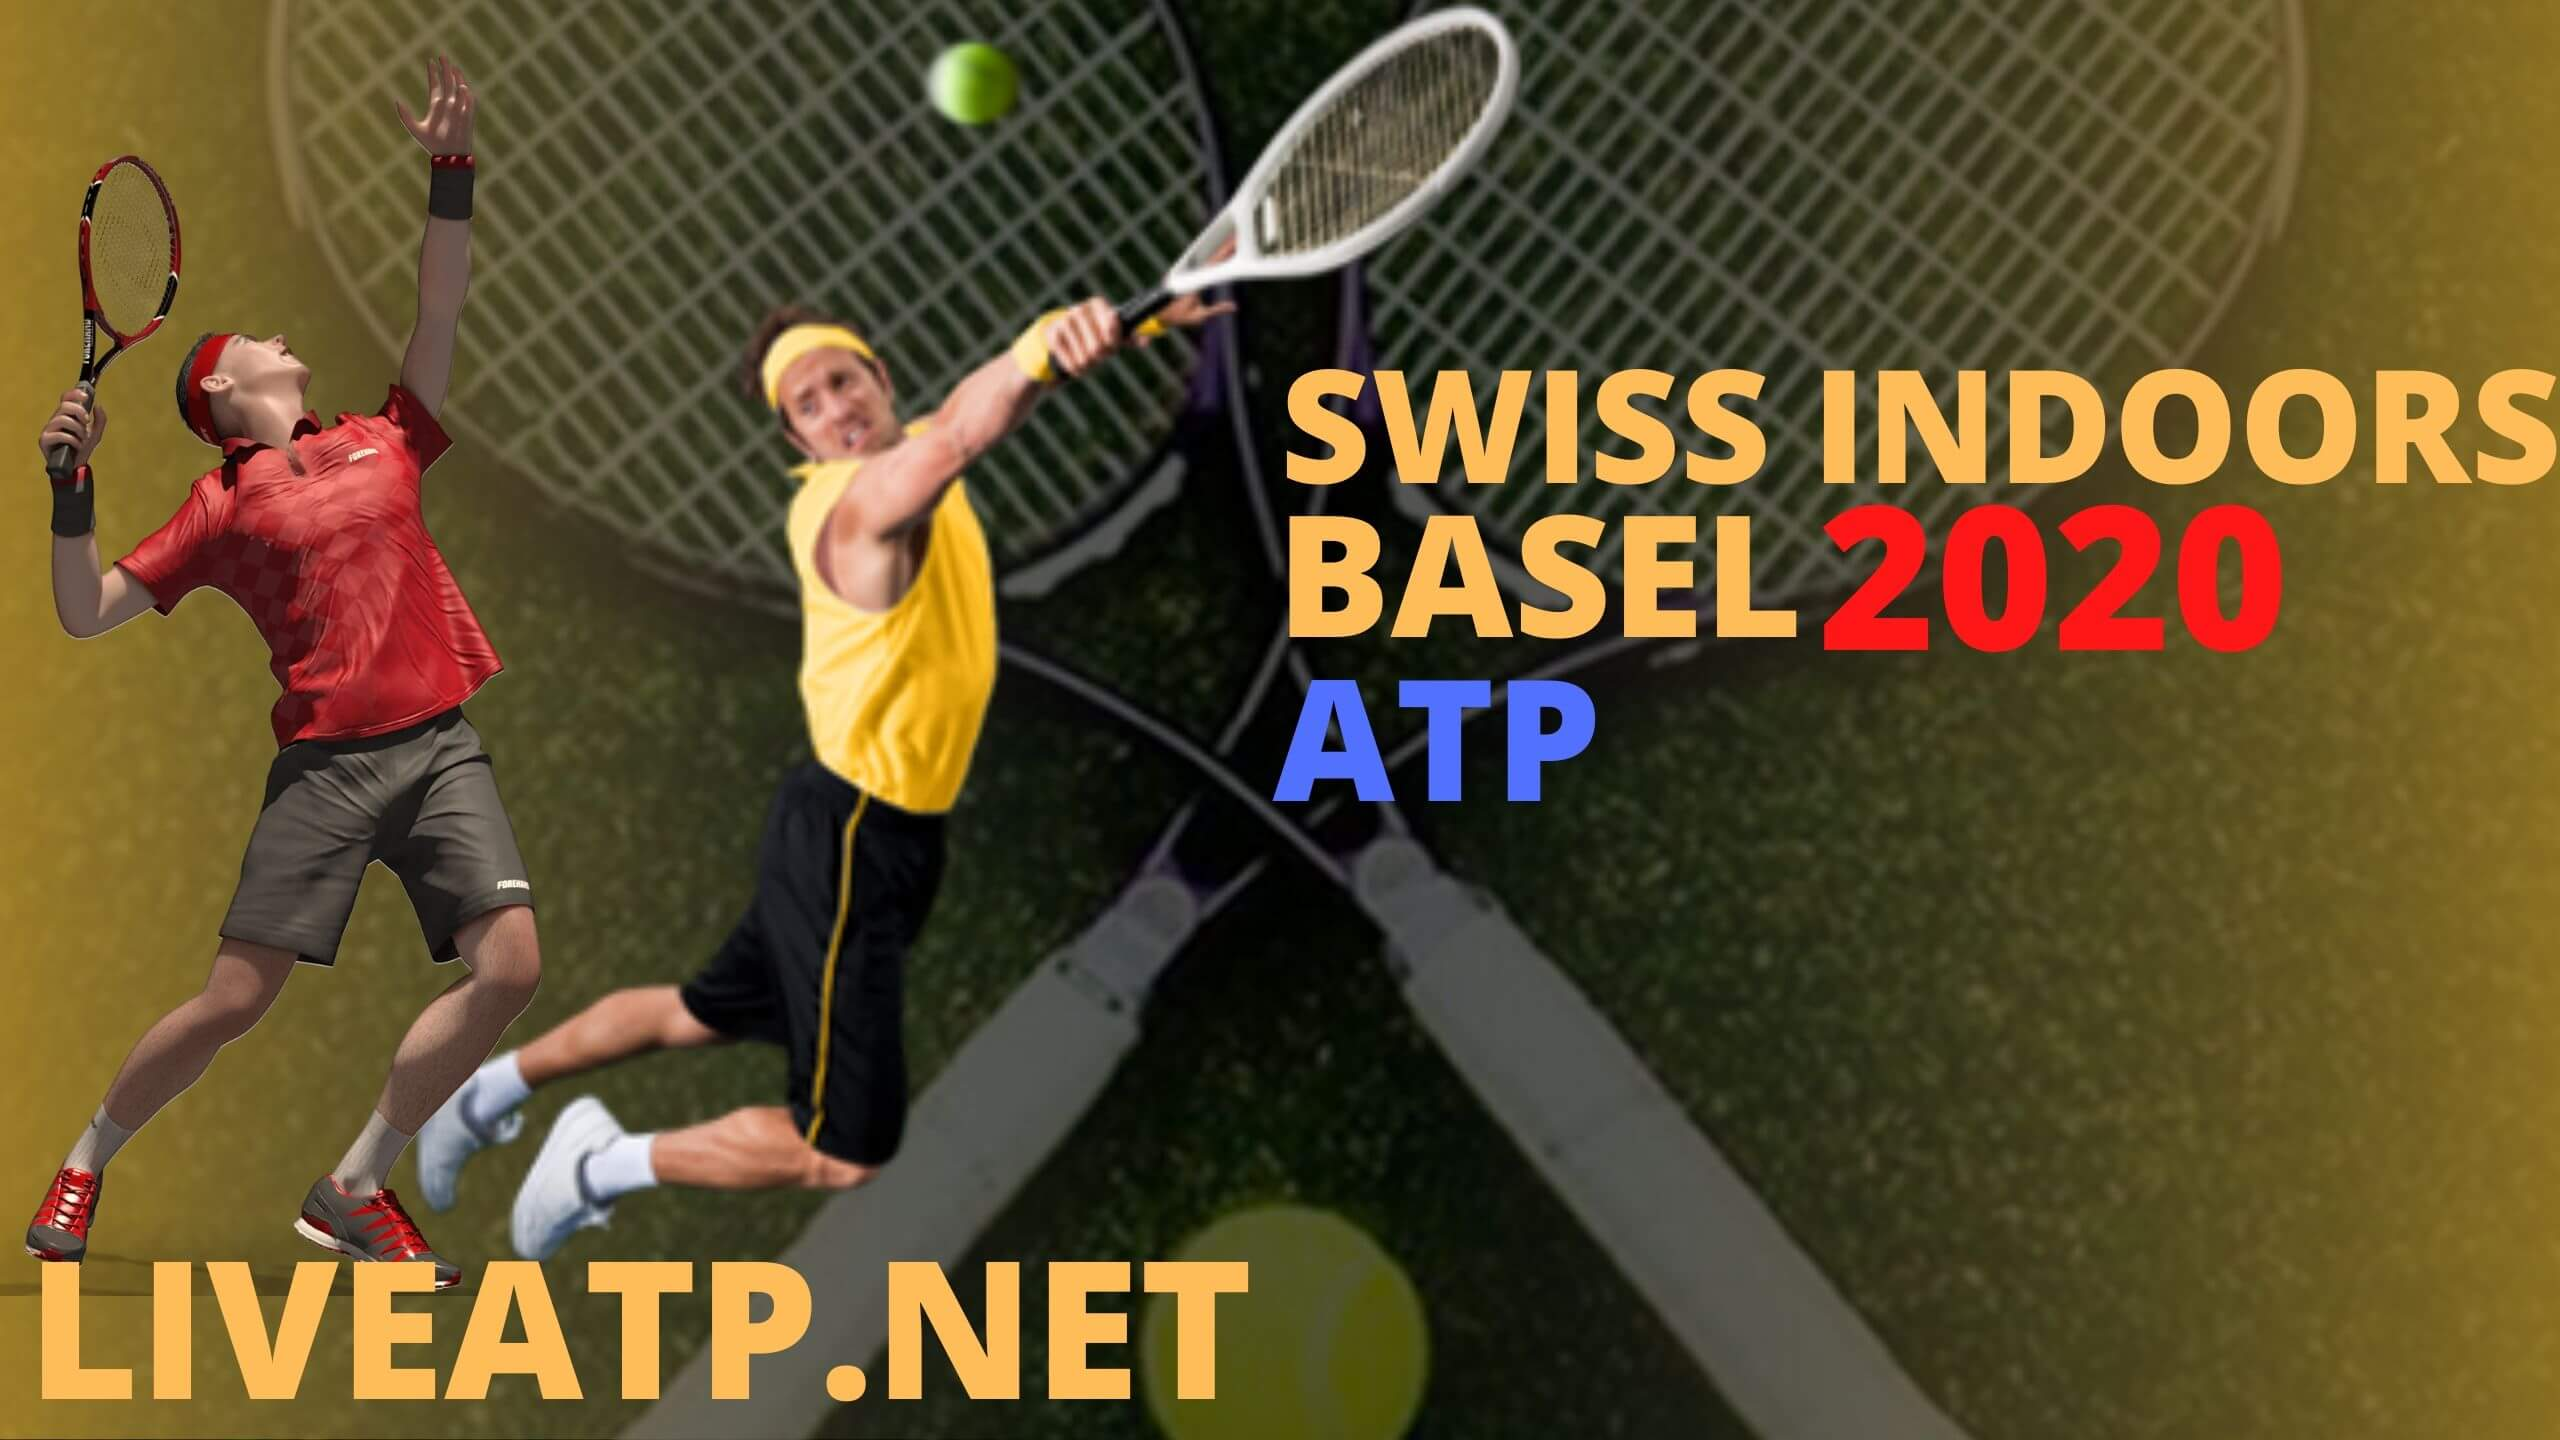 Swiss Indoors Basel Live Stream 2020 | Day 1